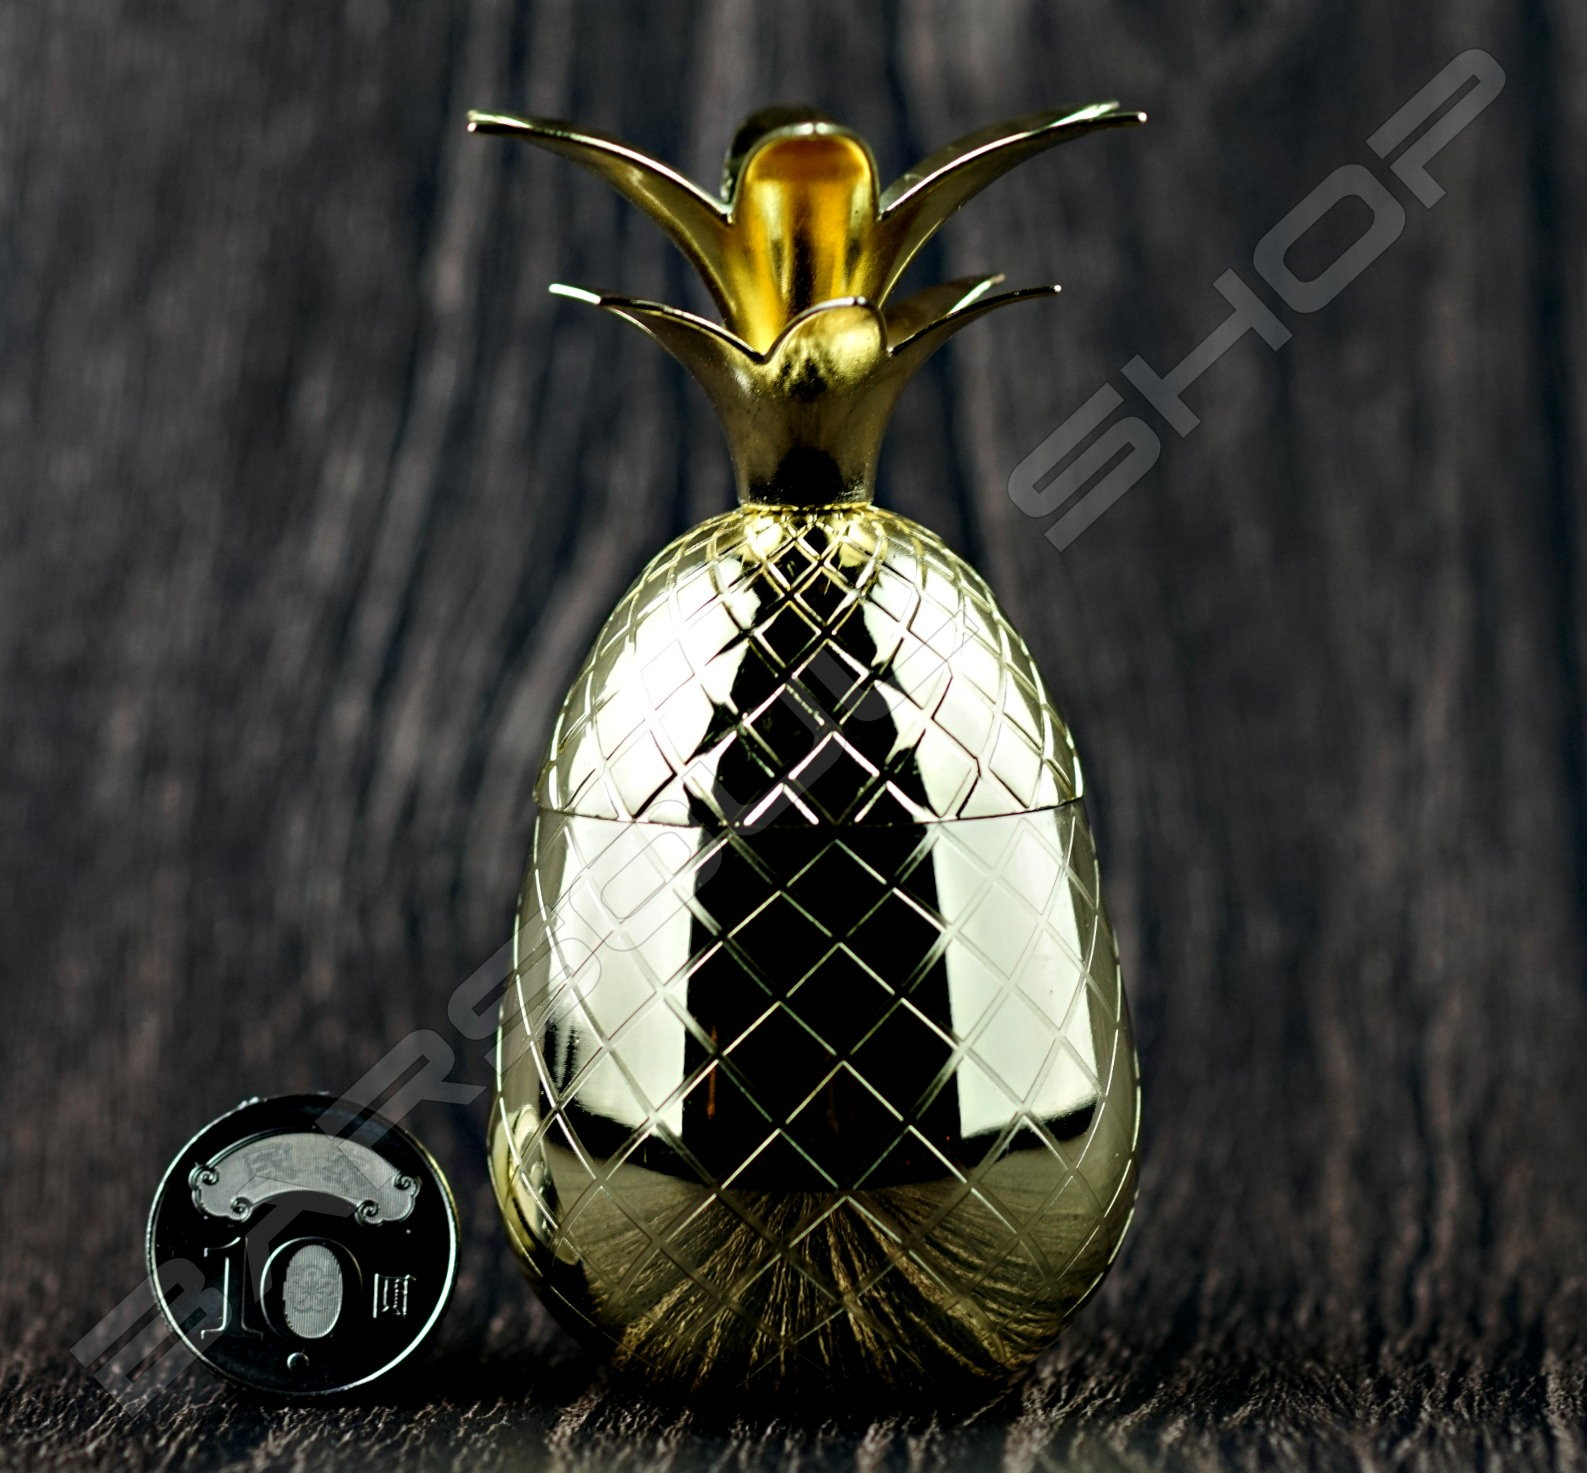 迷你鳳梨造型杯(金色)80ml Mini Plating pineapple tiki cup(gold)